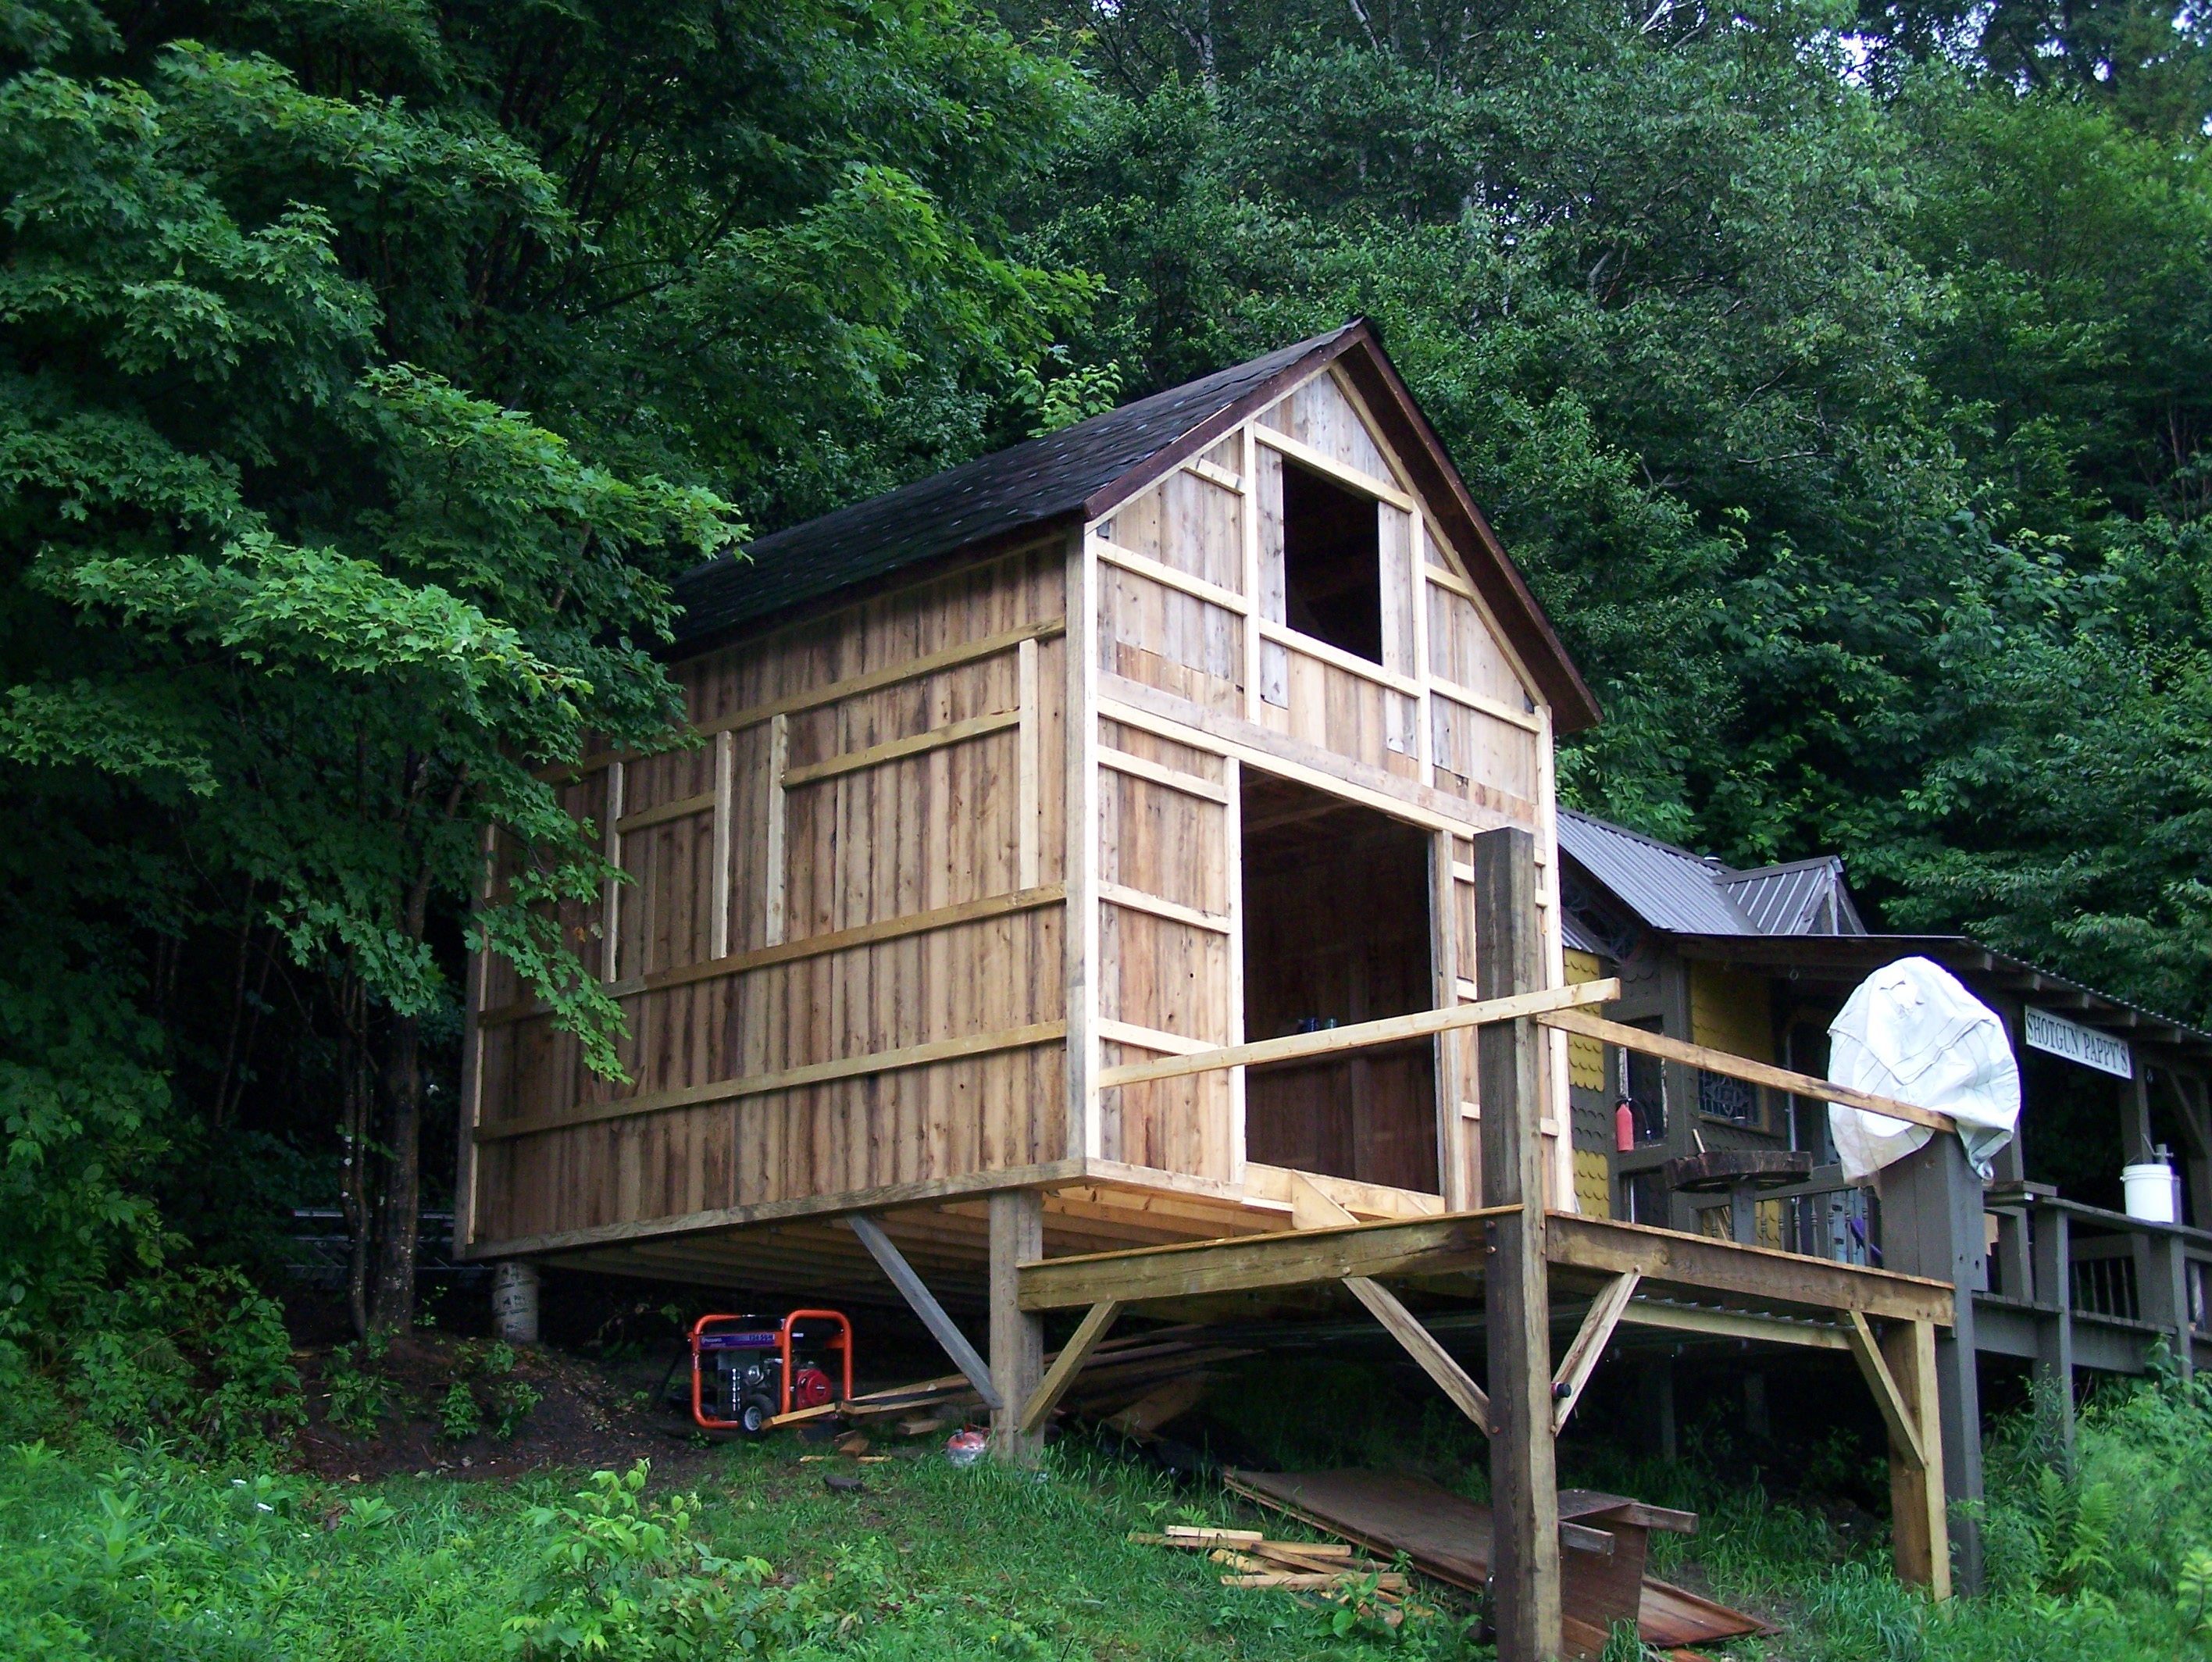 The Ultimate Corn Crib A Blog About Old Barns From